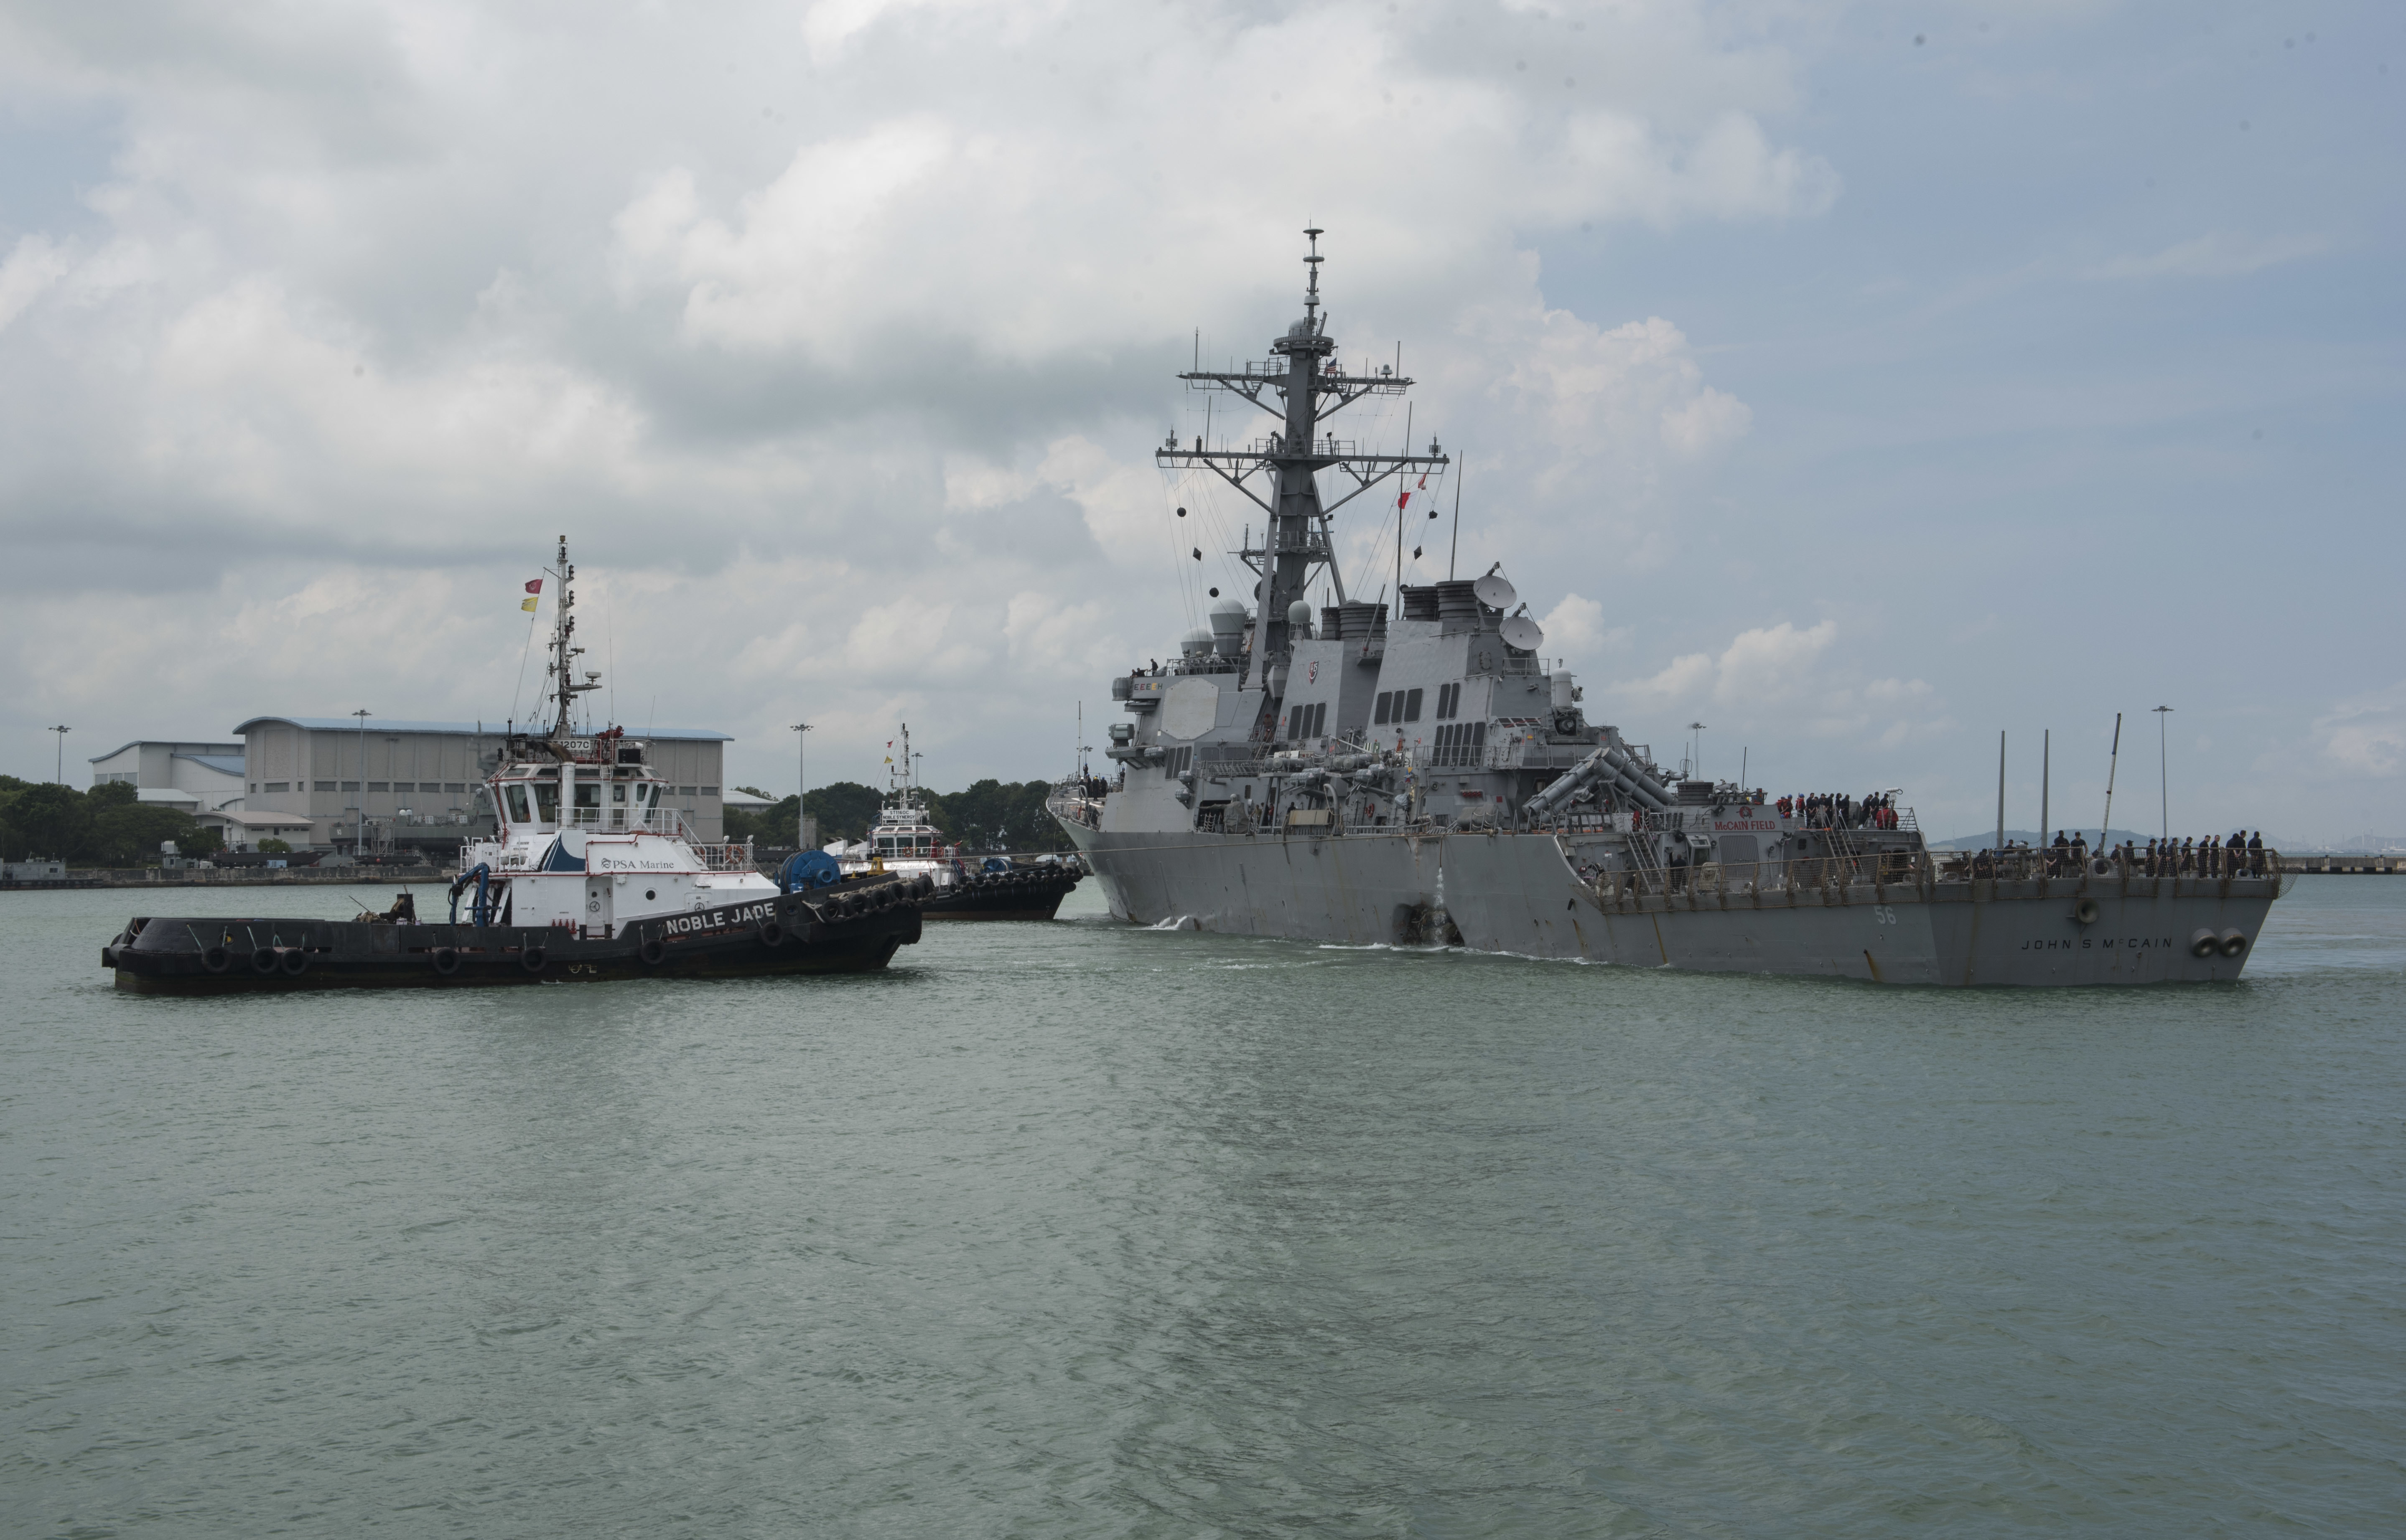 Singapore US Navy Ship Collision-2 In this Aug. 21, 2017, photo provided by U.S. Navy, the guided-missile destroyer USS John S. McCain (DDG 56) steers towards Changi Naval Base, Singapore, following a collision with the merchant vessel Alnic MC while underway east of the Straits of Malacca and Singapore. Navy and Marine Corps divers will enter flooded compartments on the USS John S. McCain to search for 10 sailors missing after the destroyer and an oil tanker collided in Southeast Asian waters, the 7th Fleet said Tuesday, Aug. 22, 2017. (Mass Communication Specialist 2nd Class Joshua Fulton/U.S. Navy via AP)